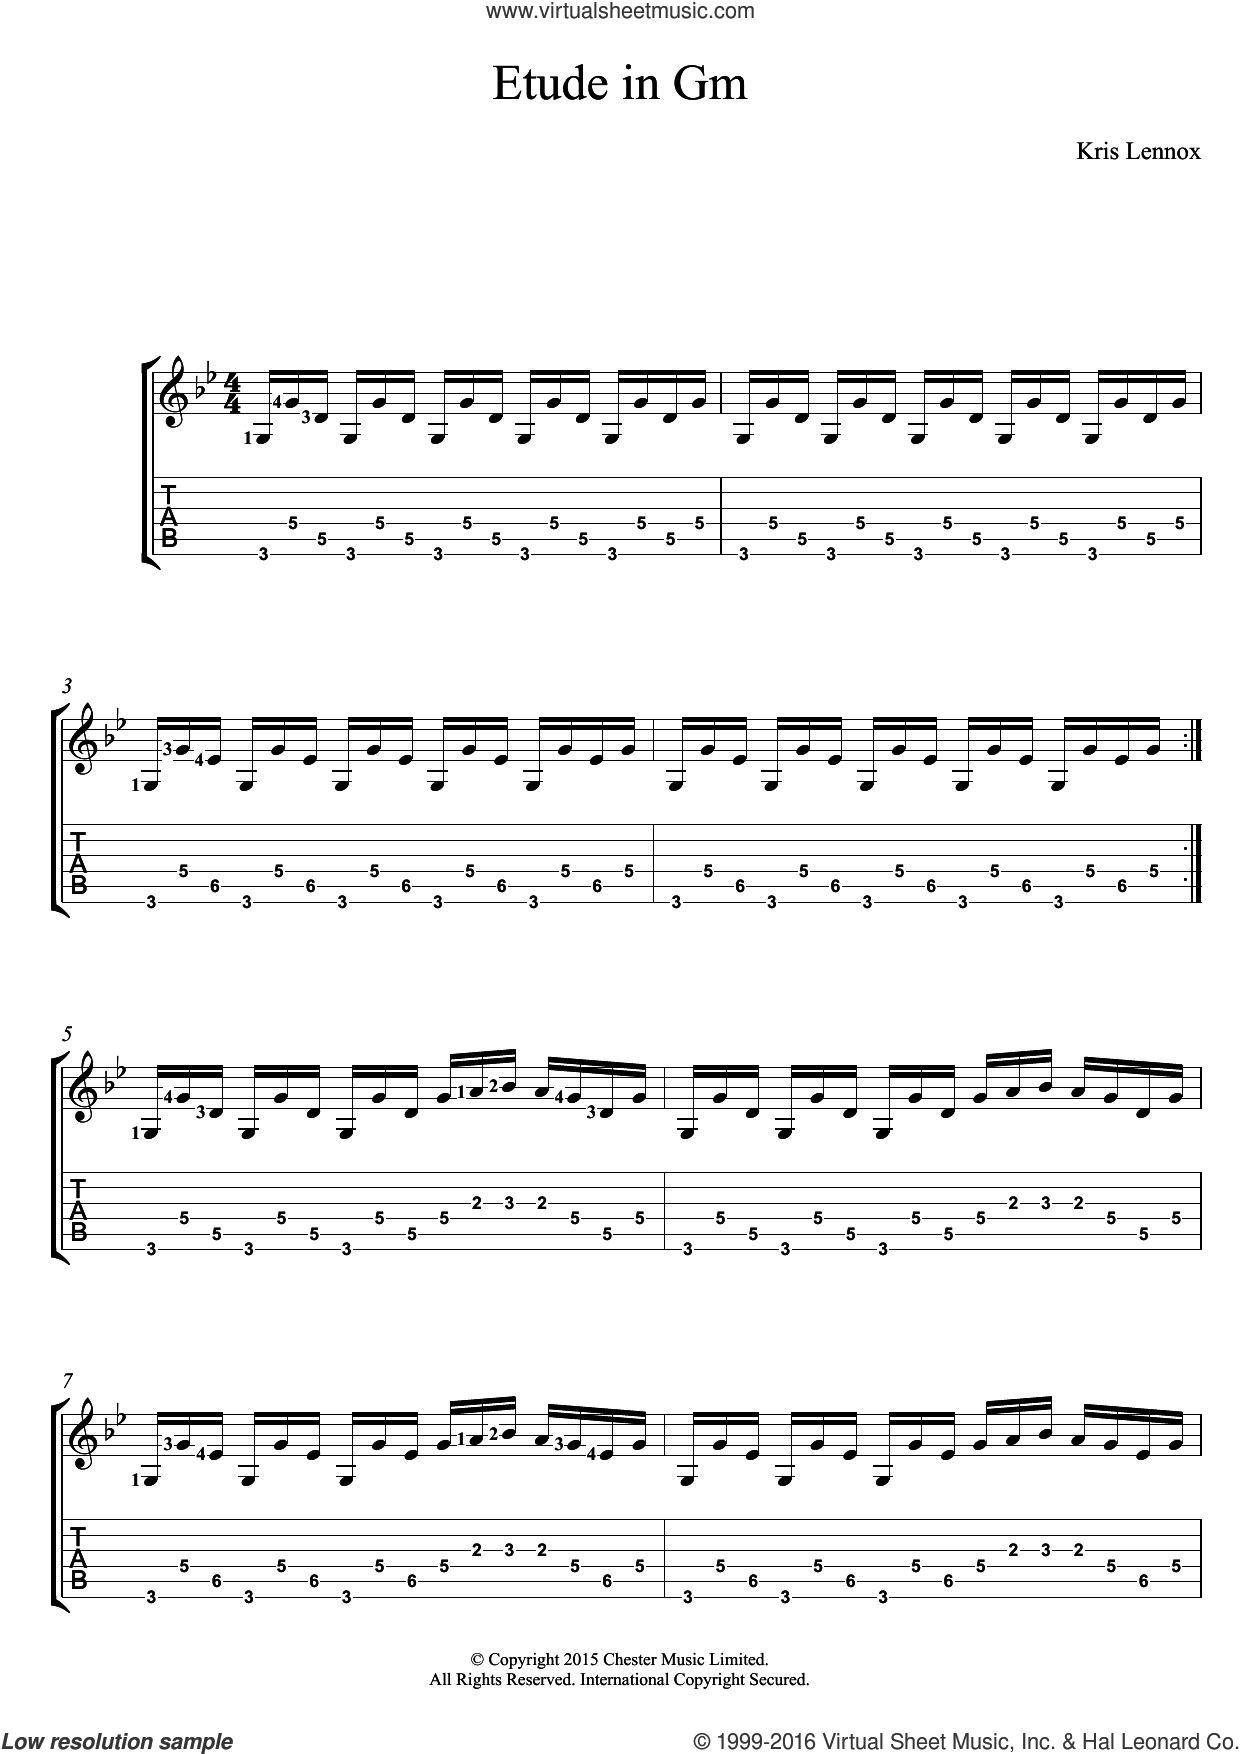 Etude In Gm sheet music for guitar (tablature) by Kris Lennox, intermediate. Score Image Preview.